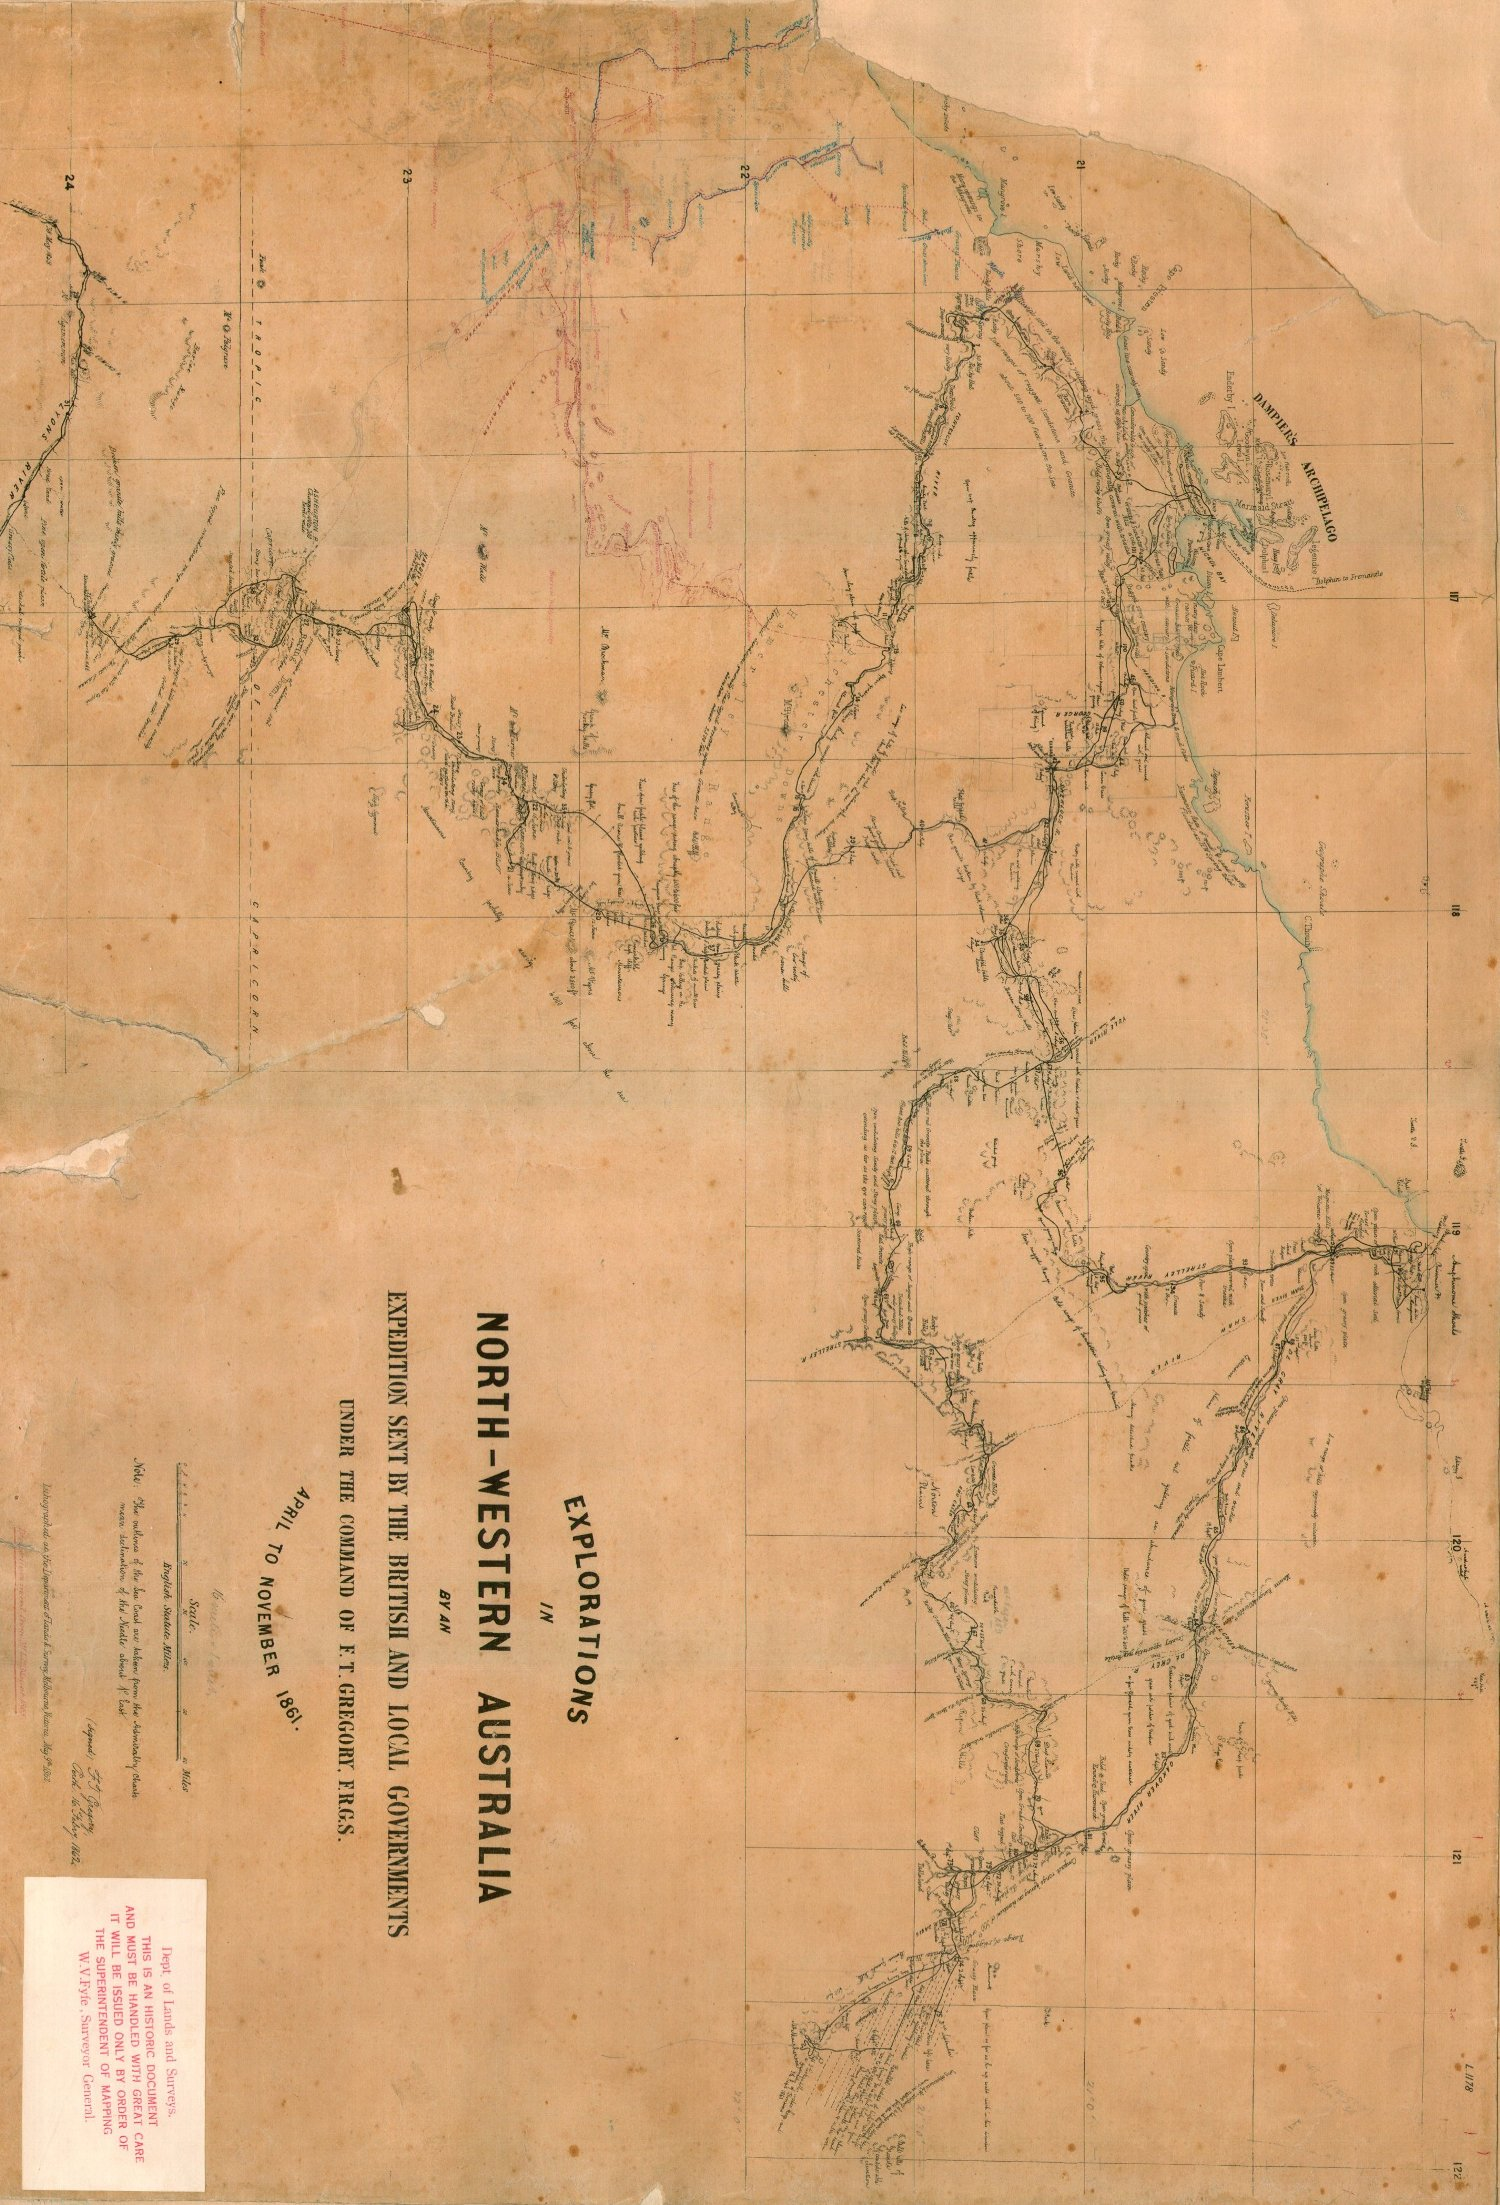 Map Of Western Australia 26th Parallel.Journals Of Australian Explorations